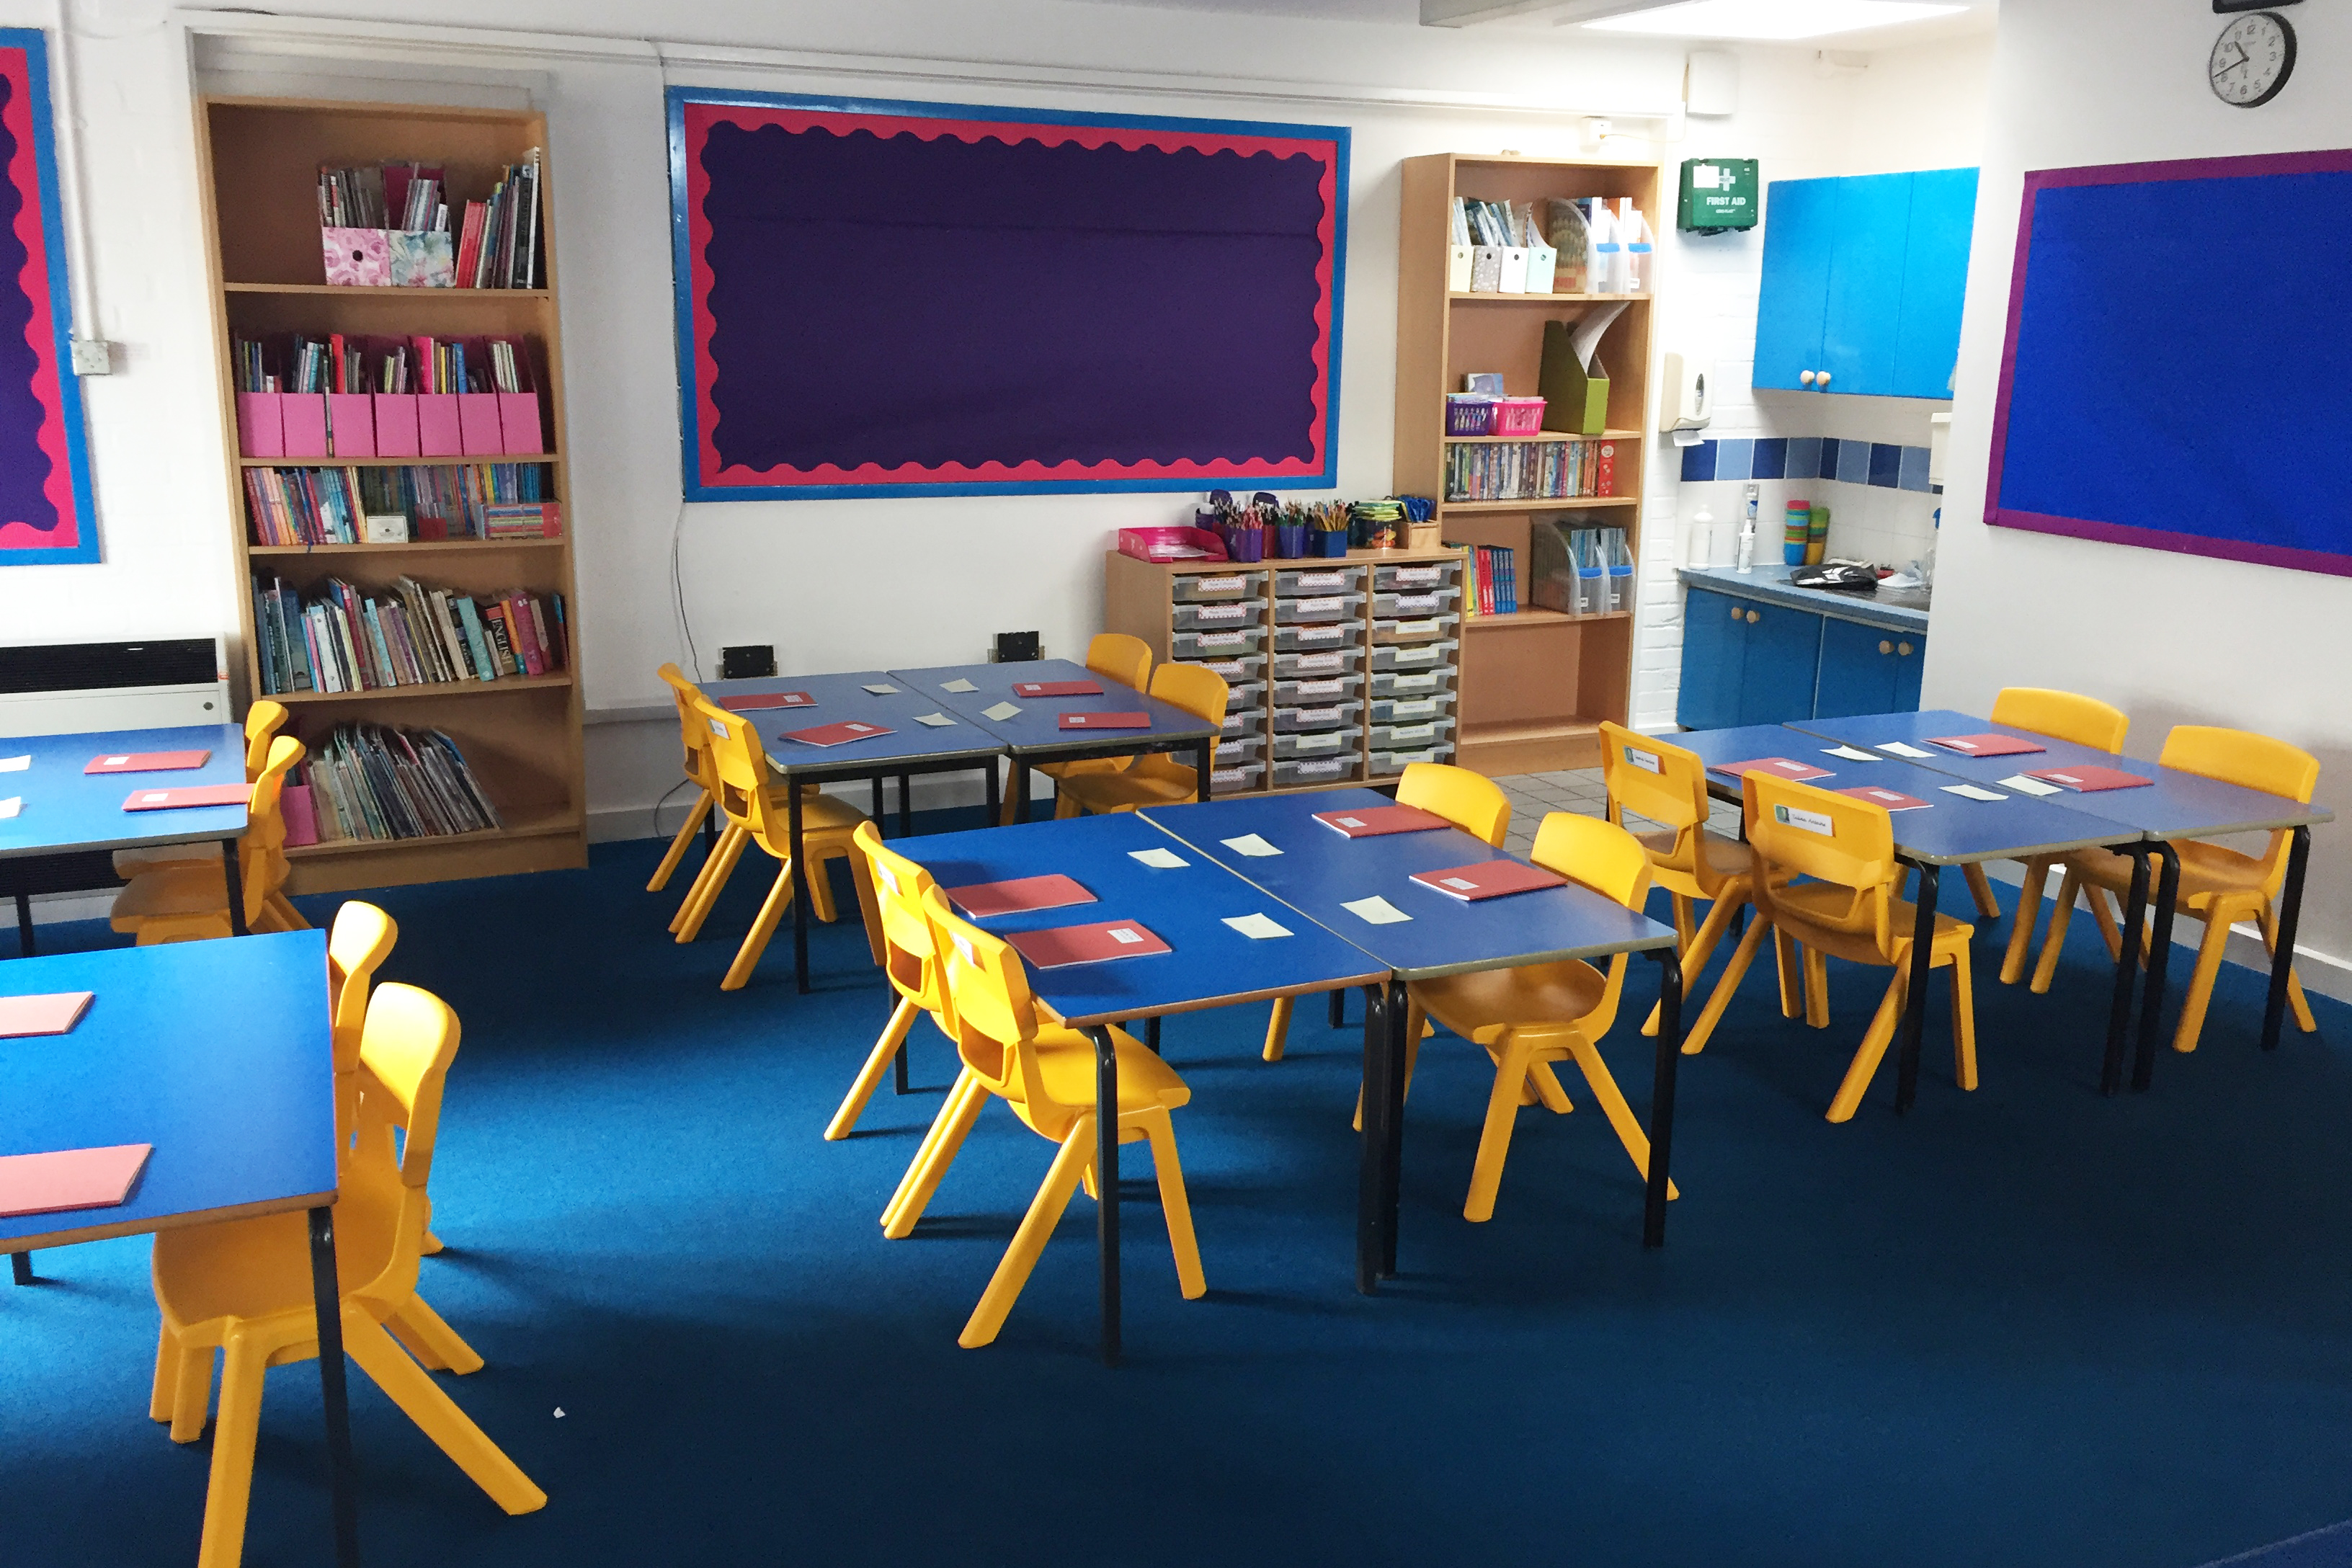 Interior fit-out, education